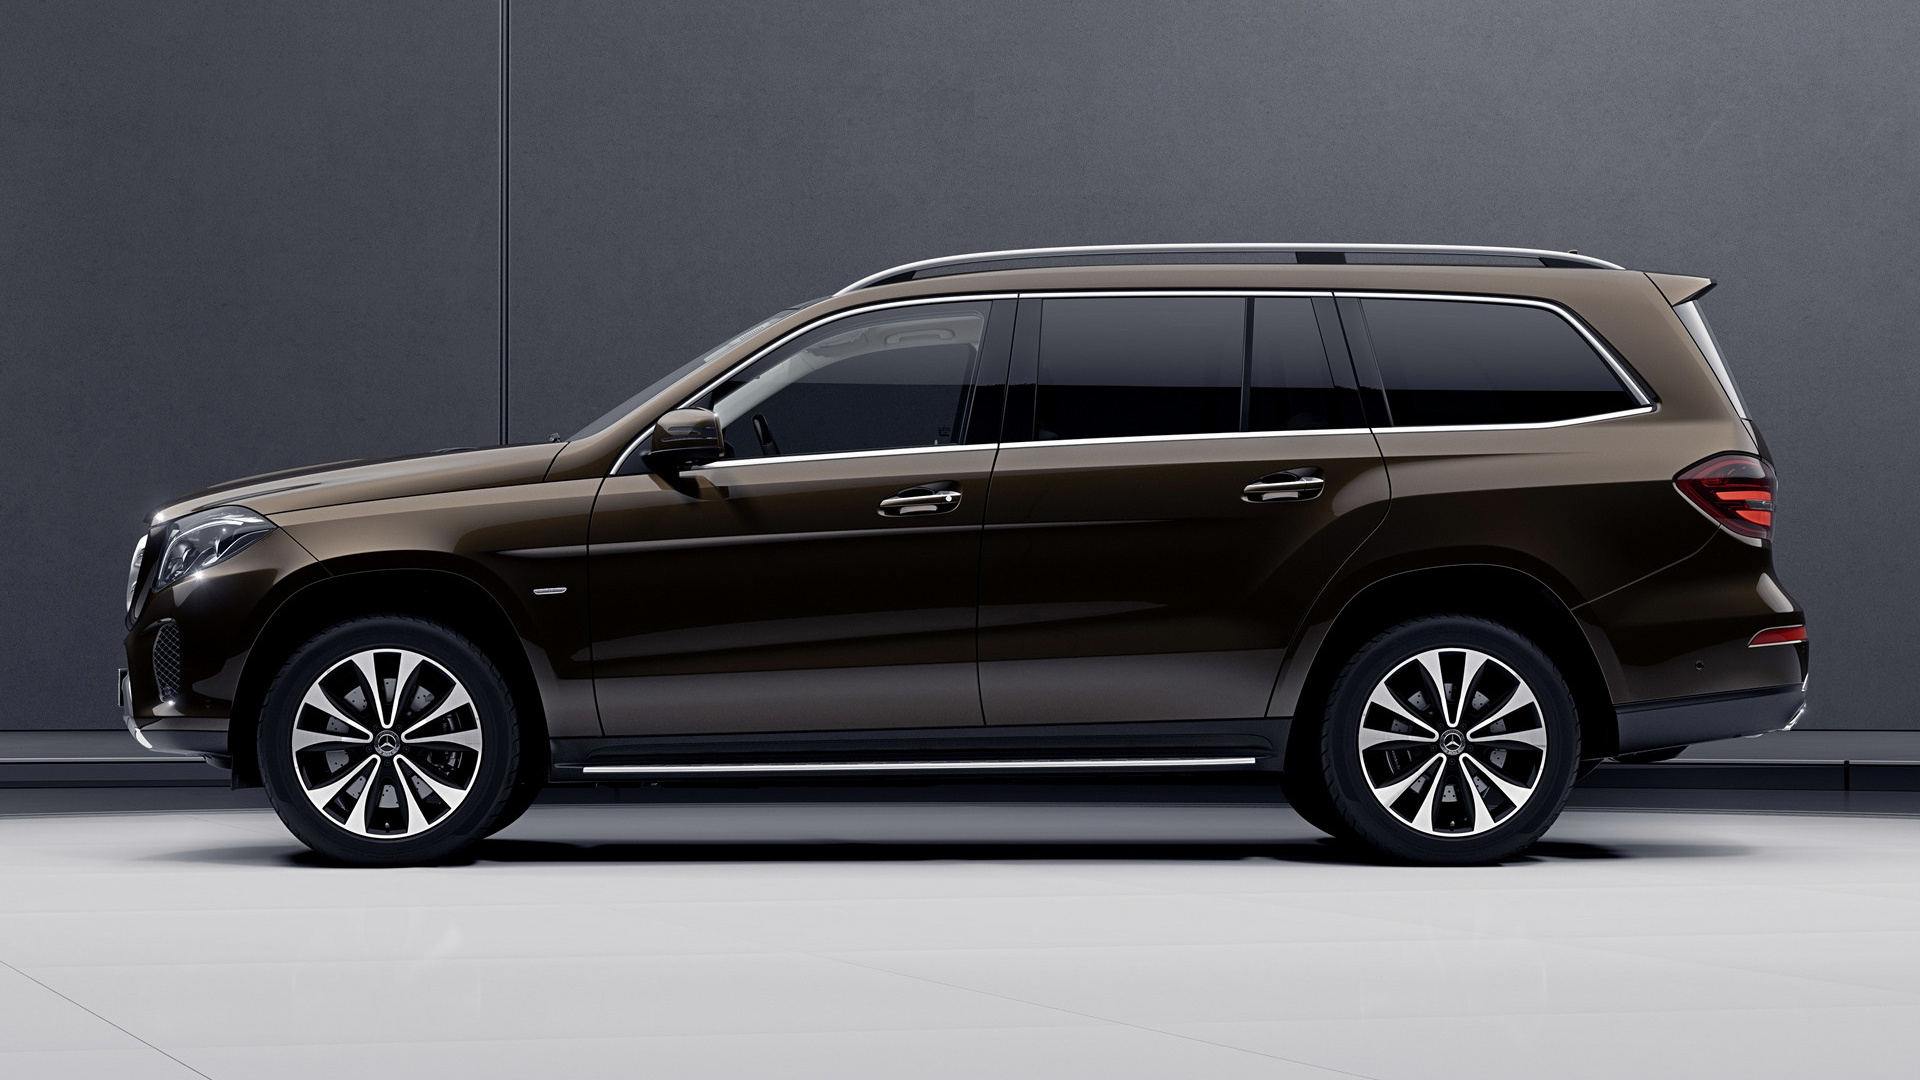 Lincoln Grand 8 >> Mercedes-Benz GLS-Class Grand Edition (2017) Wallpapers and HD Images - Car Pixel